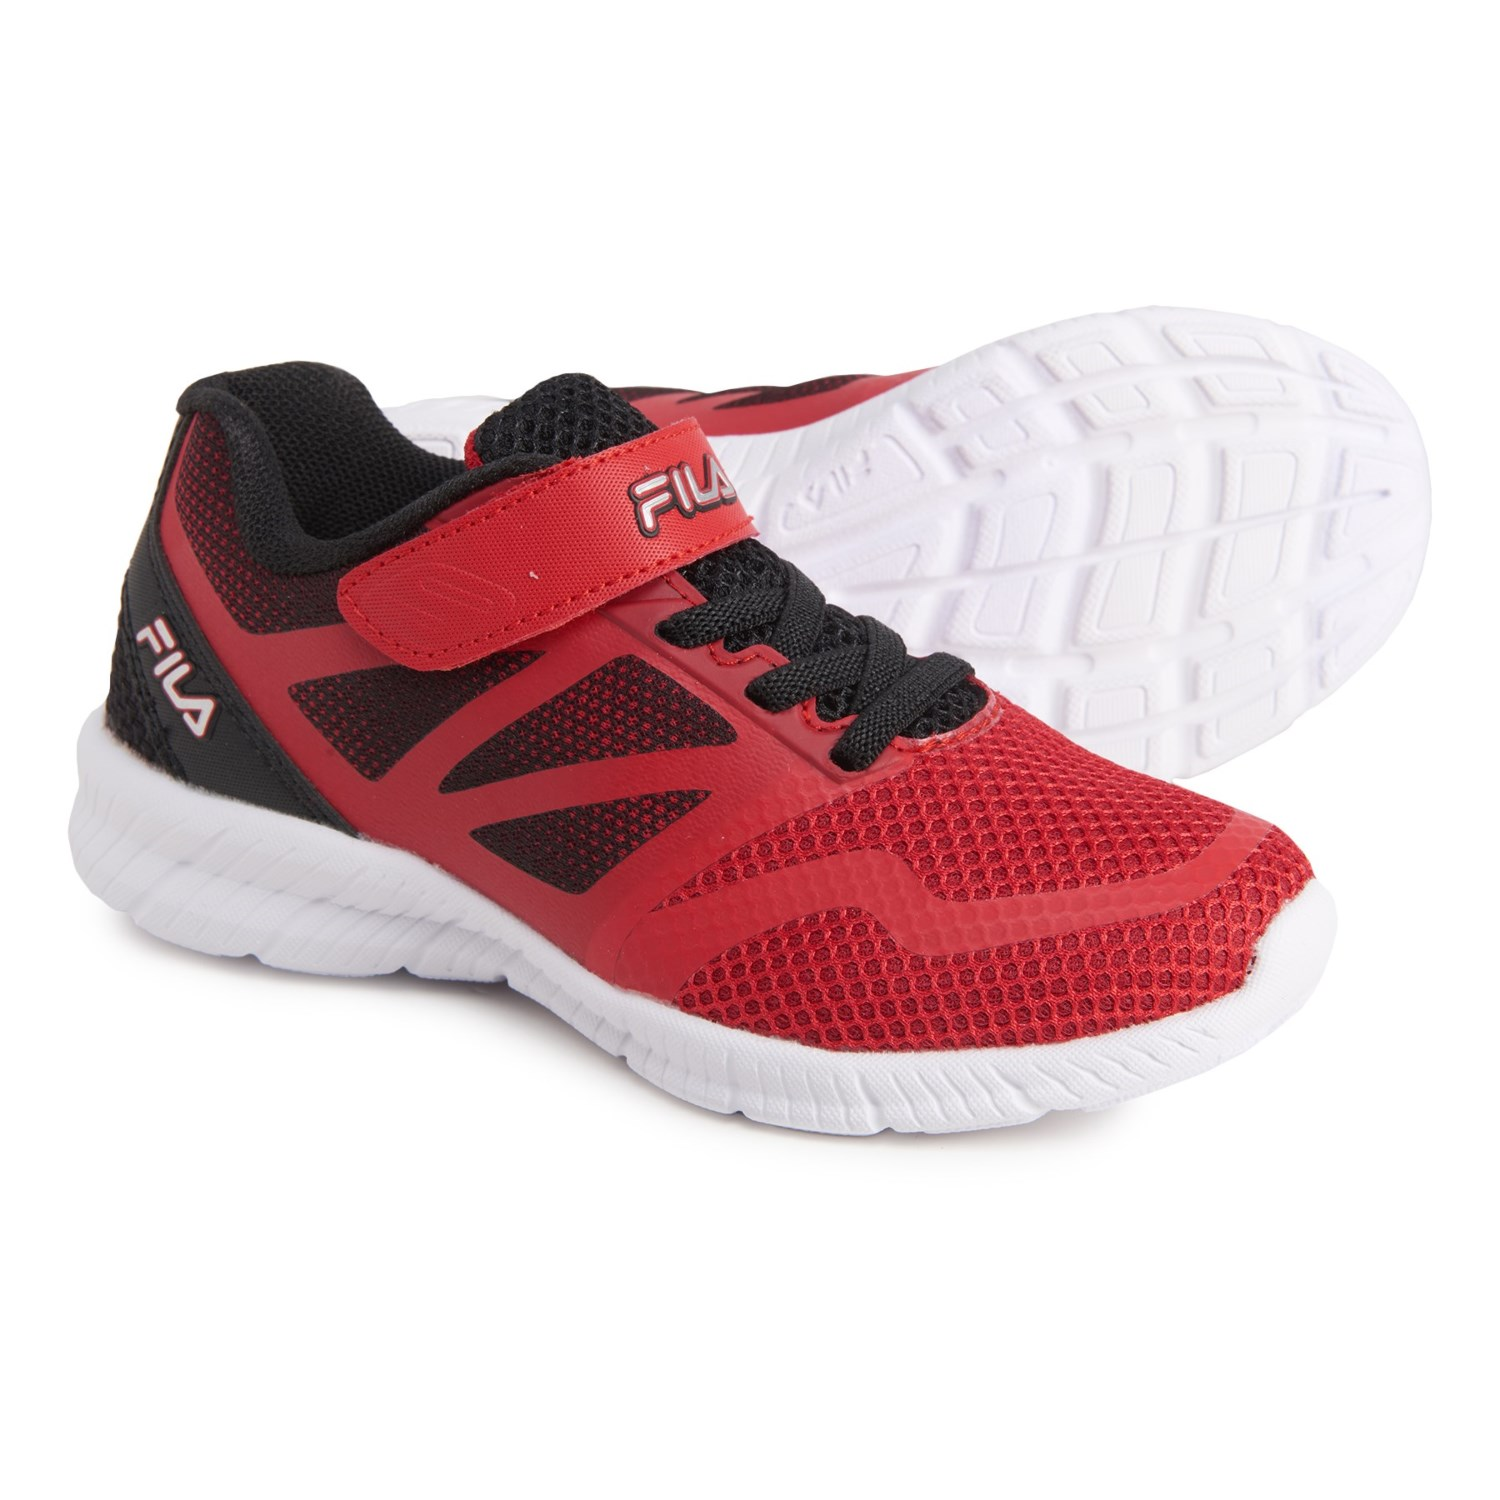 Fila Ravenue 5 Strap Running Shoes (For